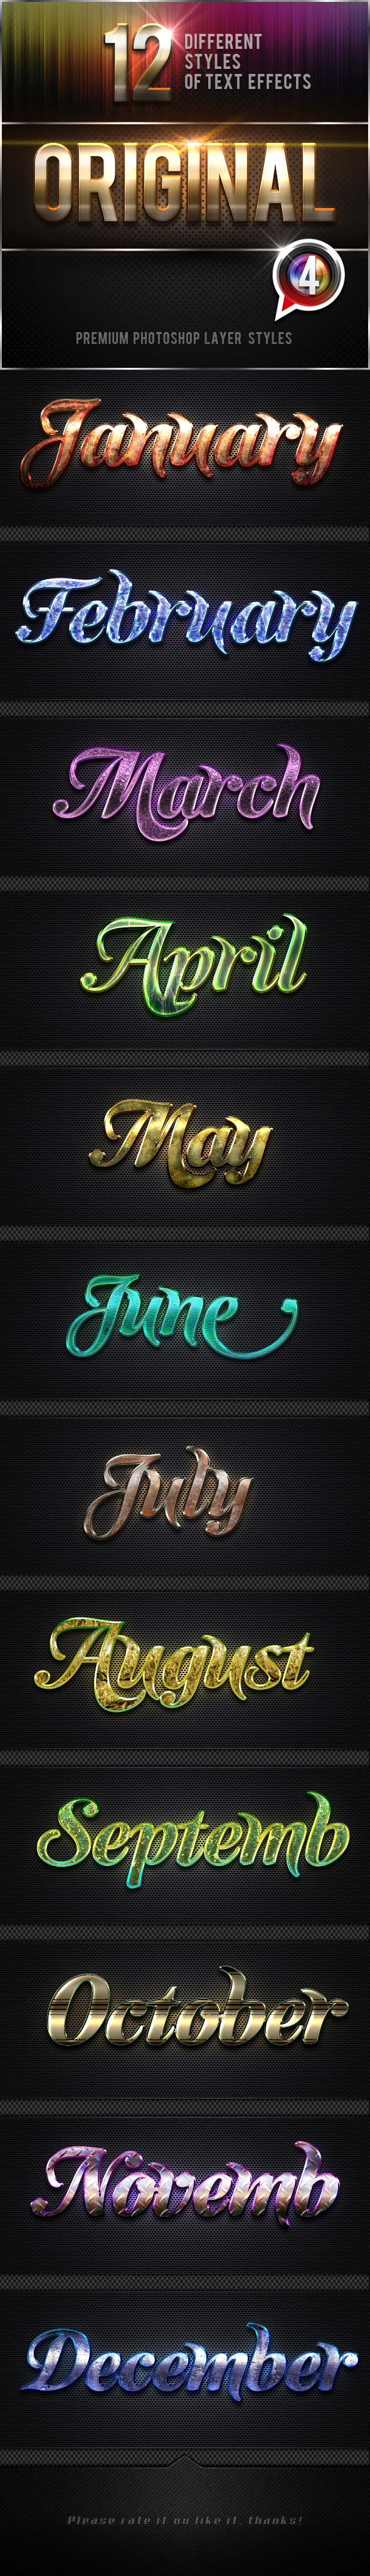 12 Original Photoshop Text Effects Vol.4 - Text Effects Styles